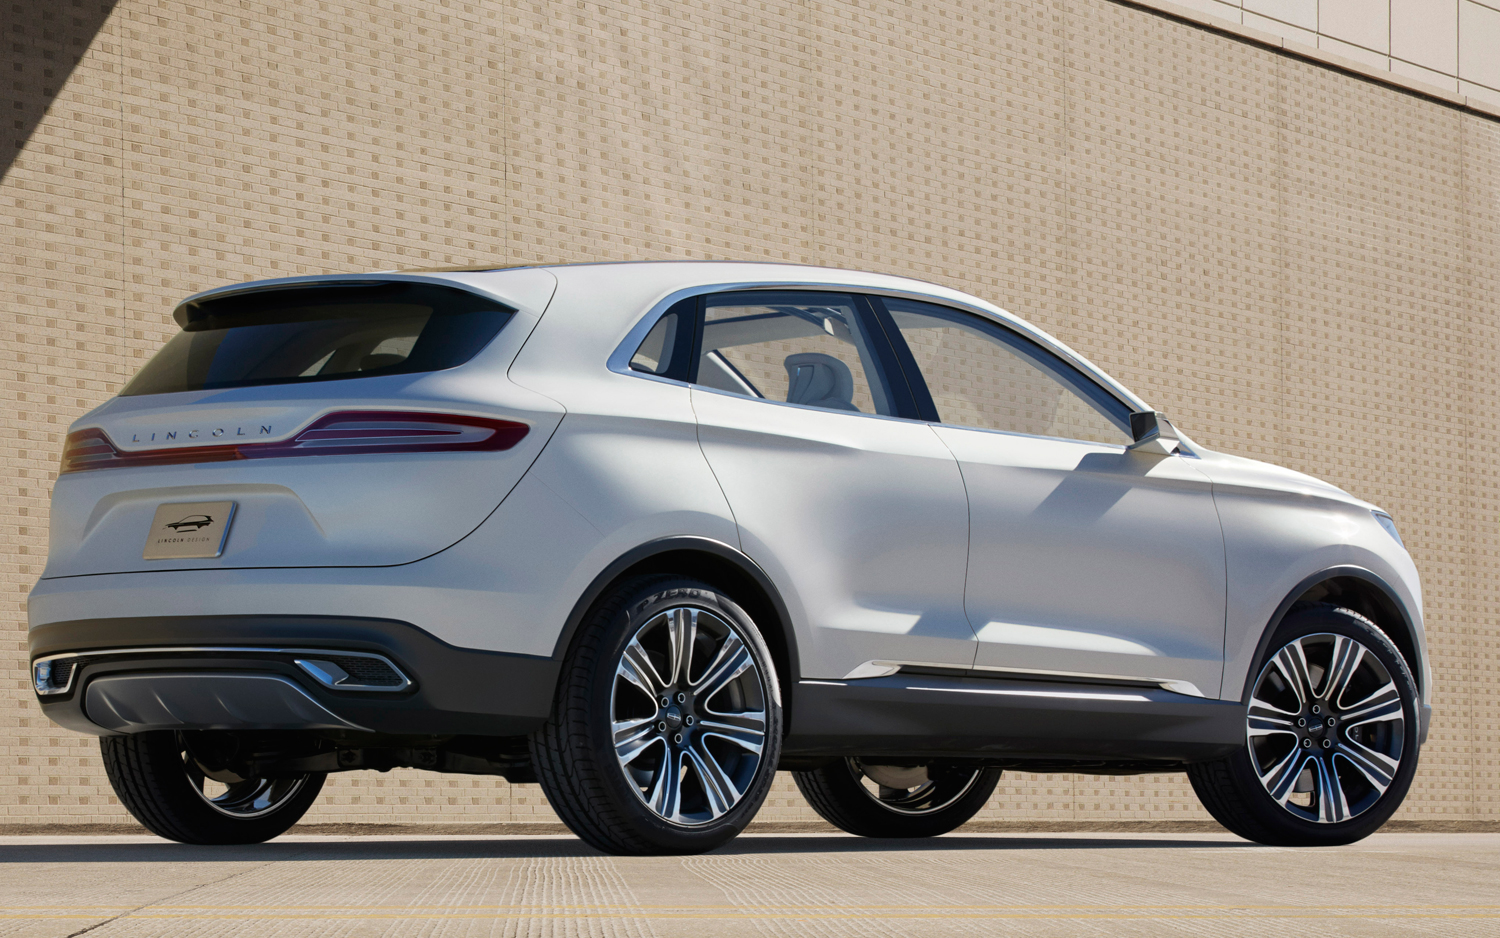 2014 Lincoln Mkc Concept Backgrounds, Compatible - PC, Mobile, Gadgets| 1500x938 px